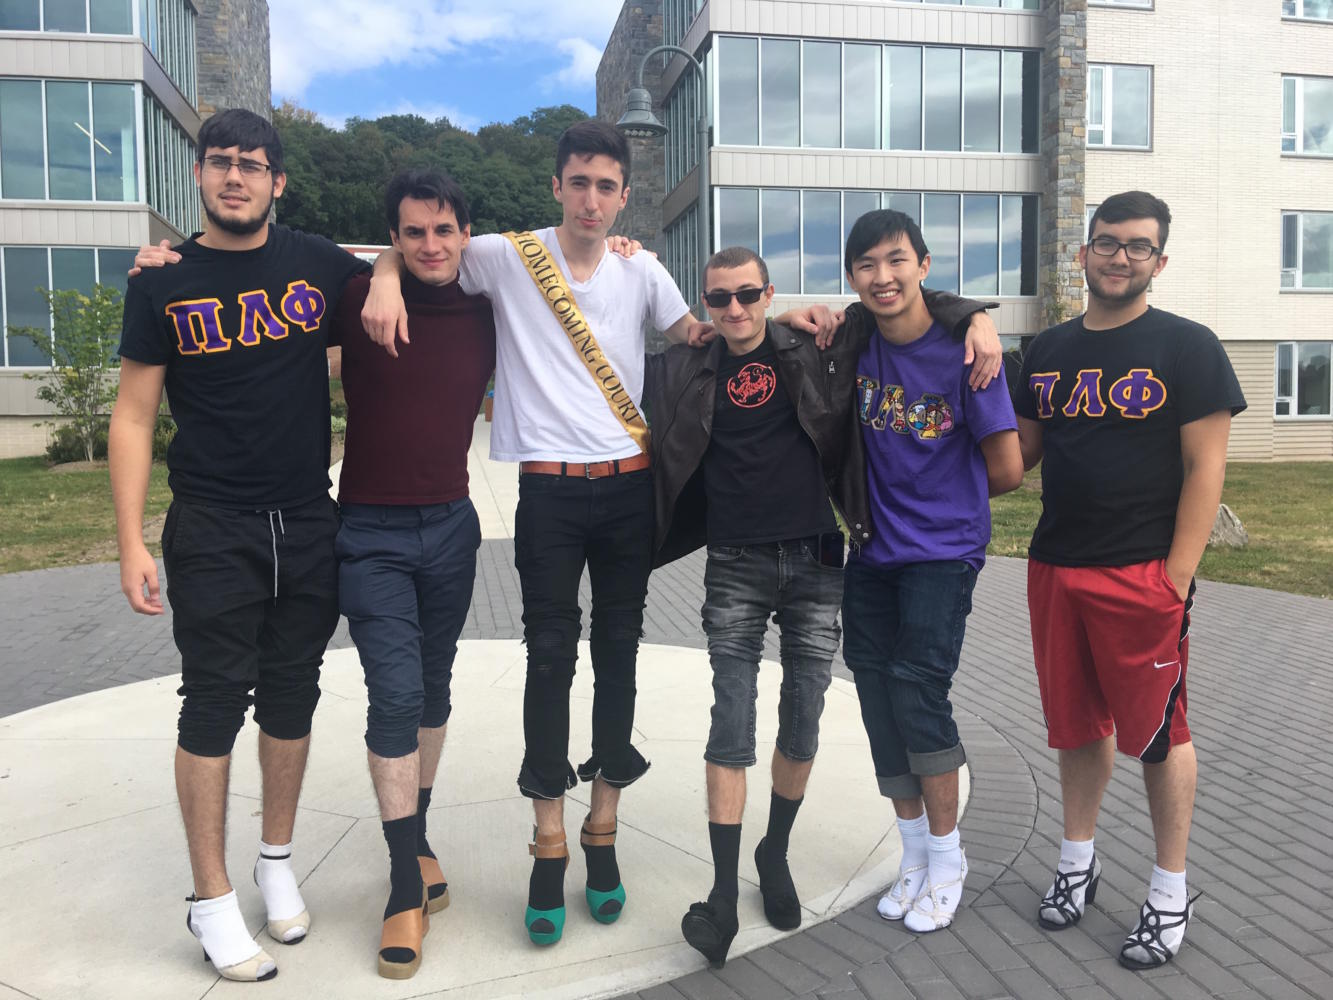 Brothers of Pi Lambda Phi at the Walk-A-Mile event